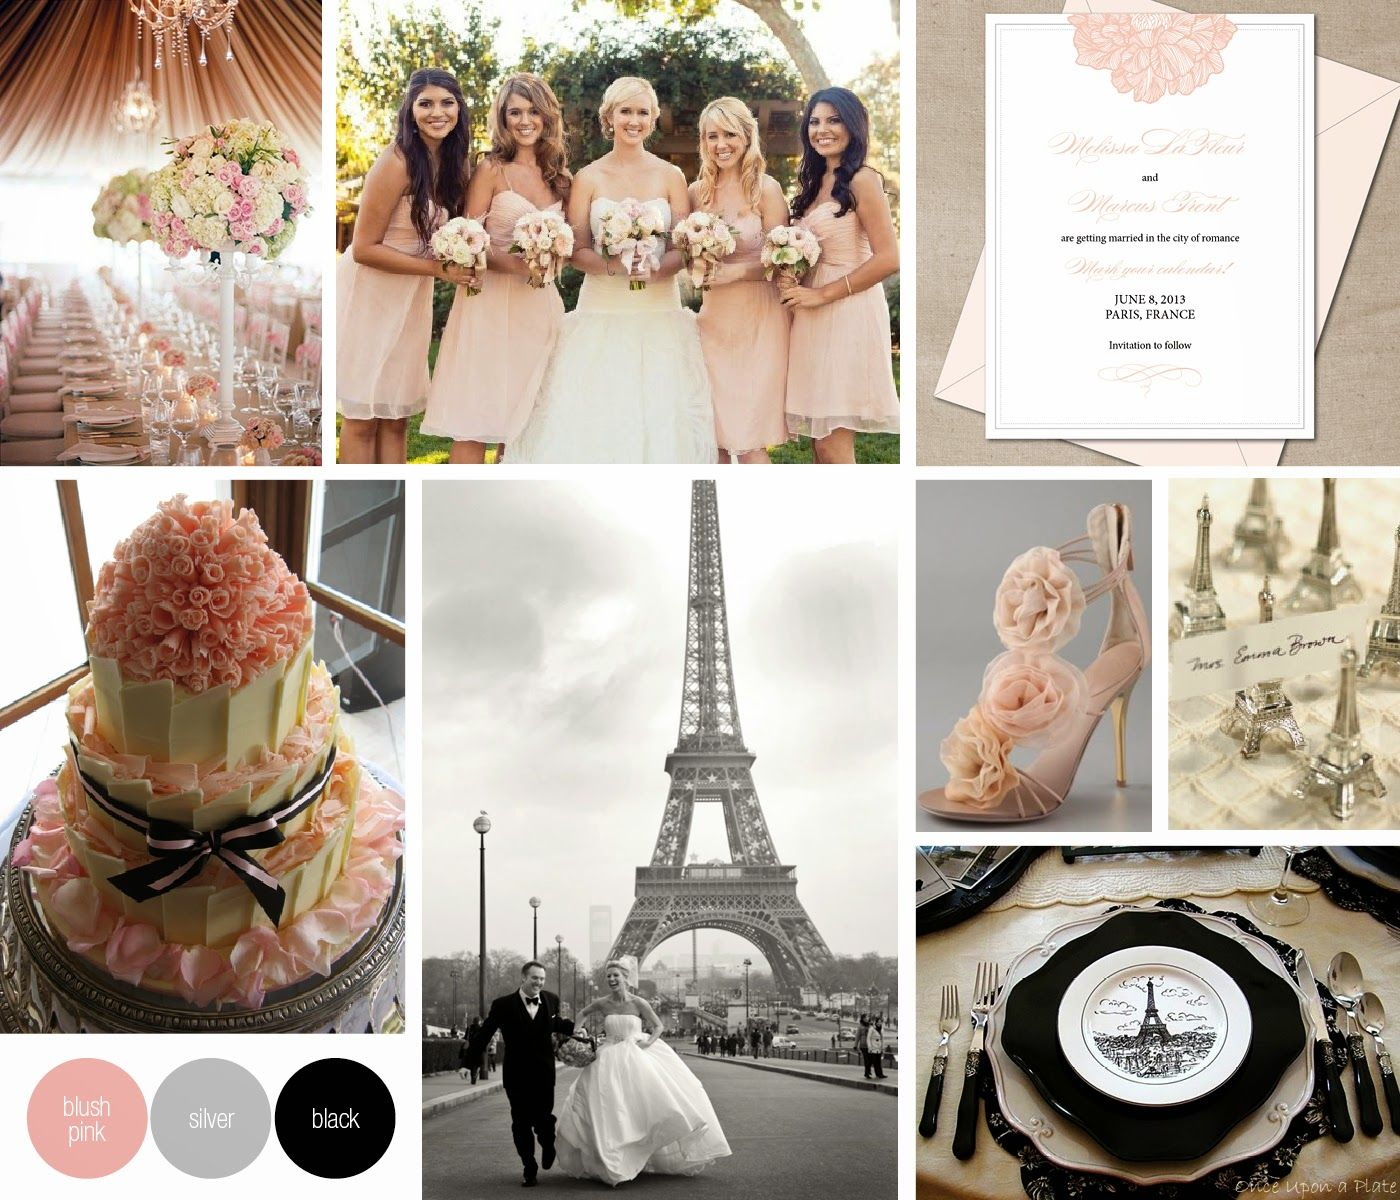 inspiration for a pink, black and white Paris-themed wedding ...